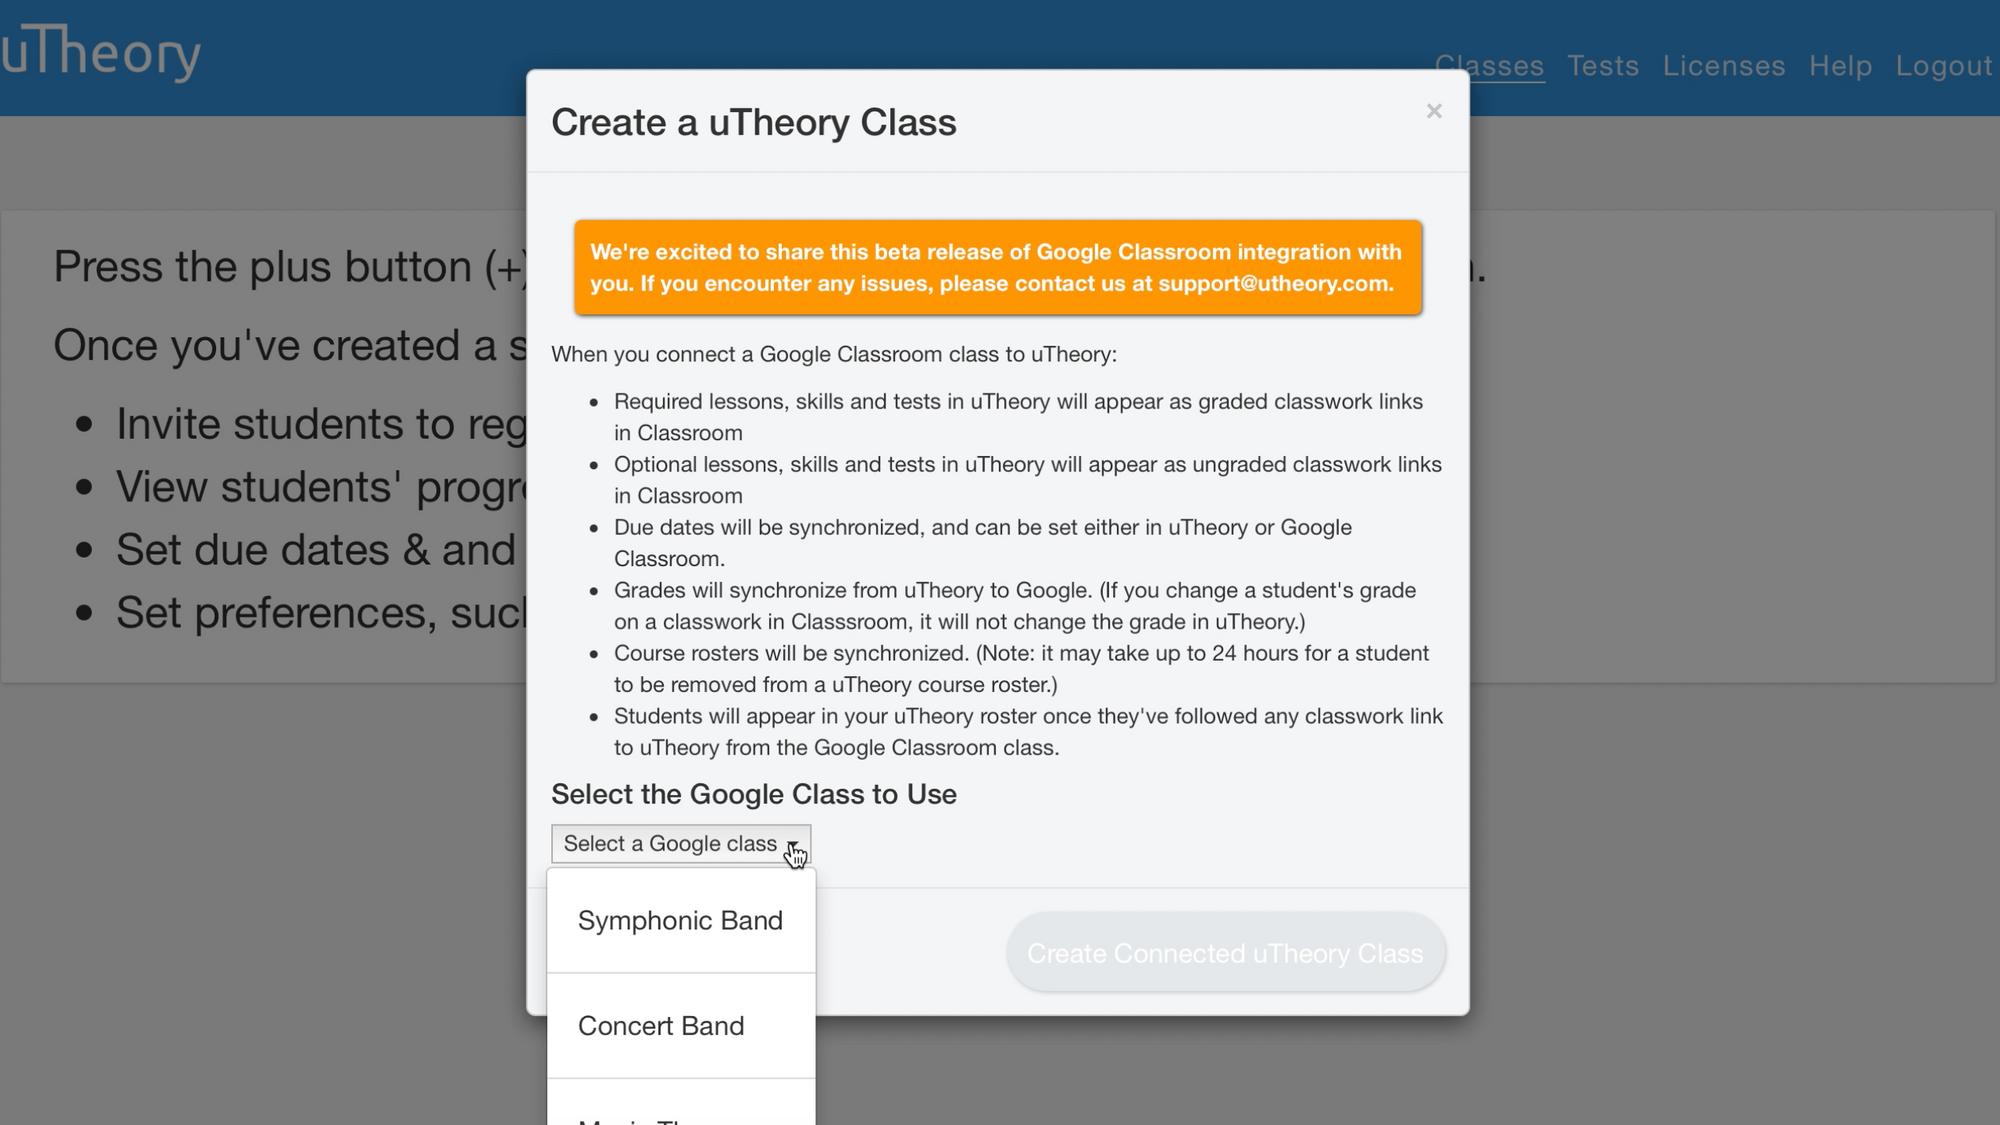 Image of selecting your Google Class to add to uTheory.